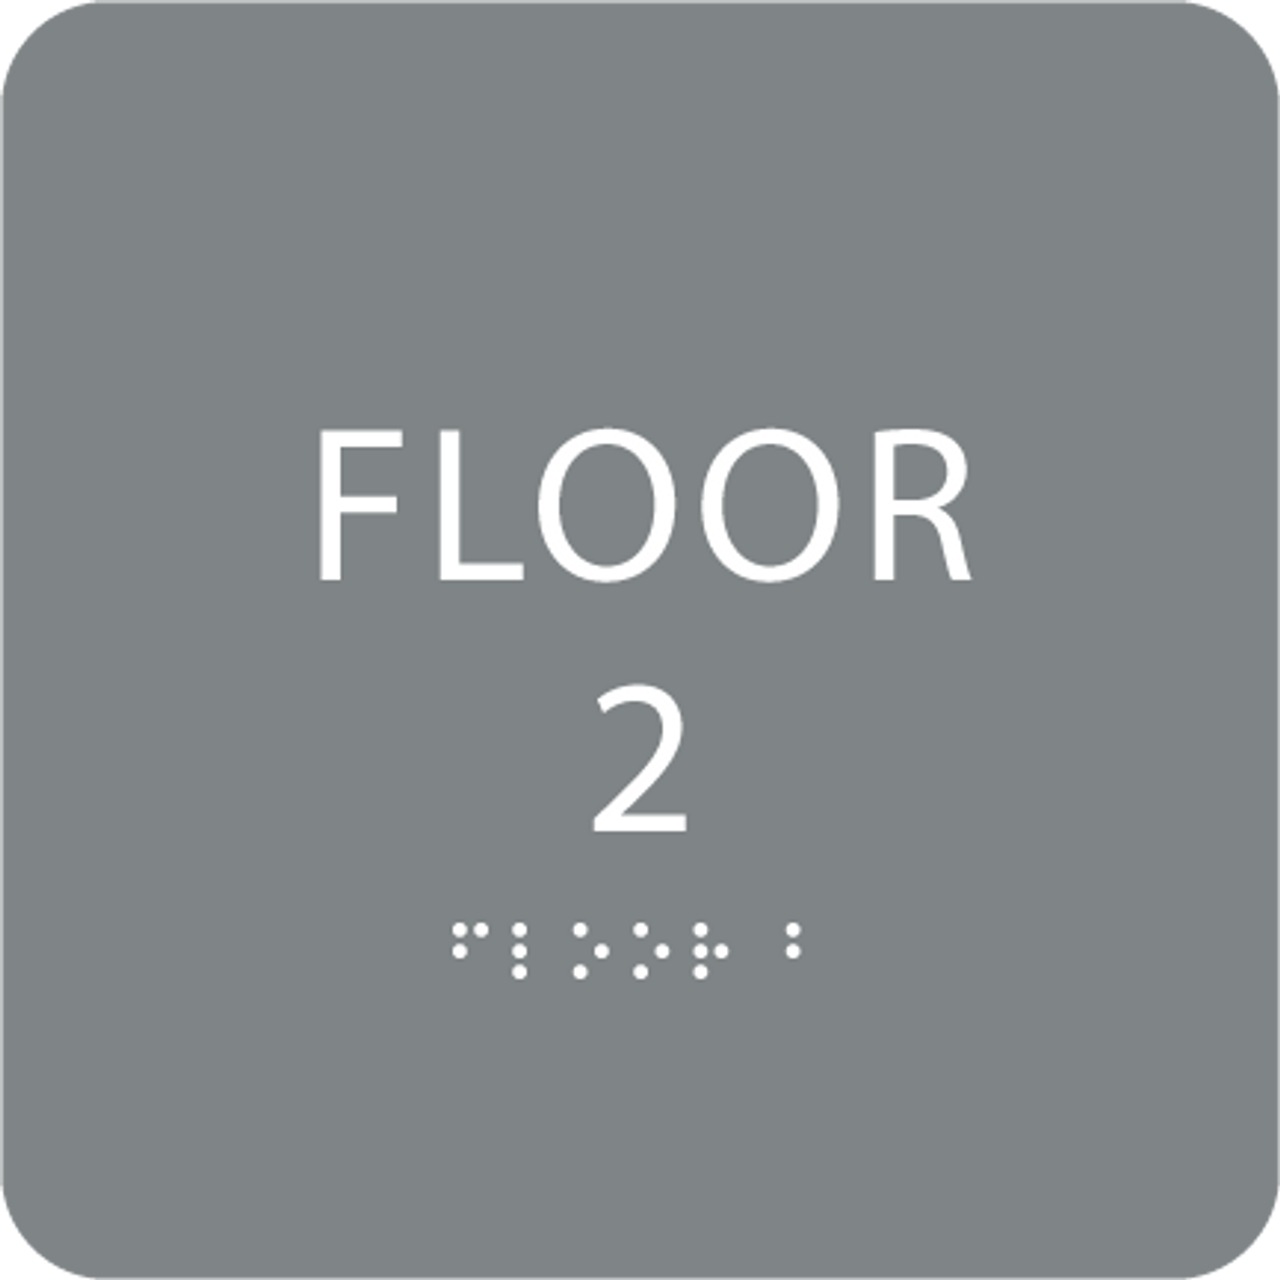 Grey Floor 2 Identification Sign